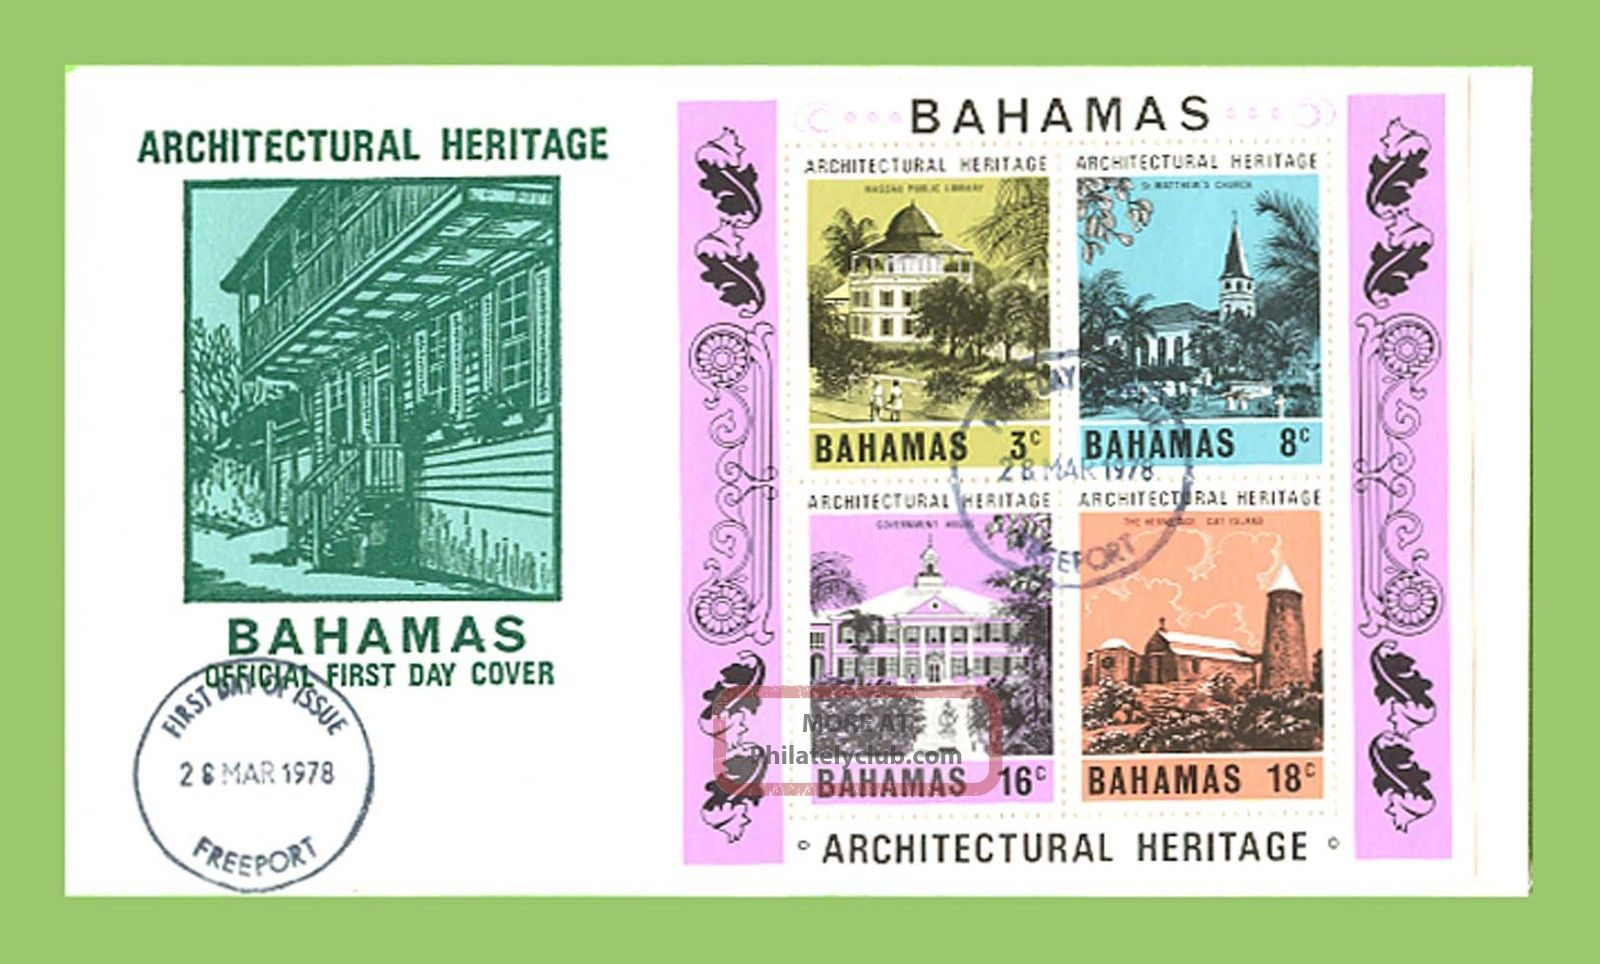 Bahamas 1978 Architectural Heritage Miniature Sheetfirst Day Cover,  Freeport Caribbean photo